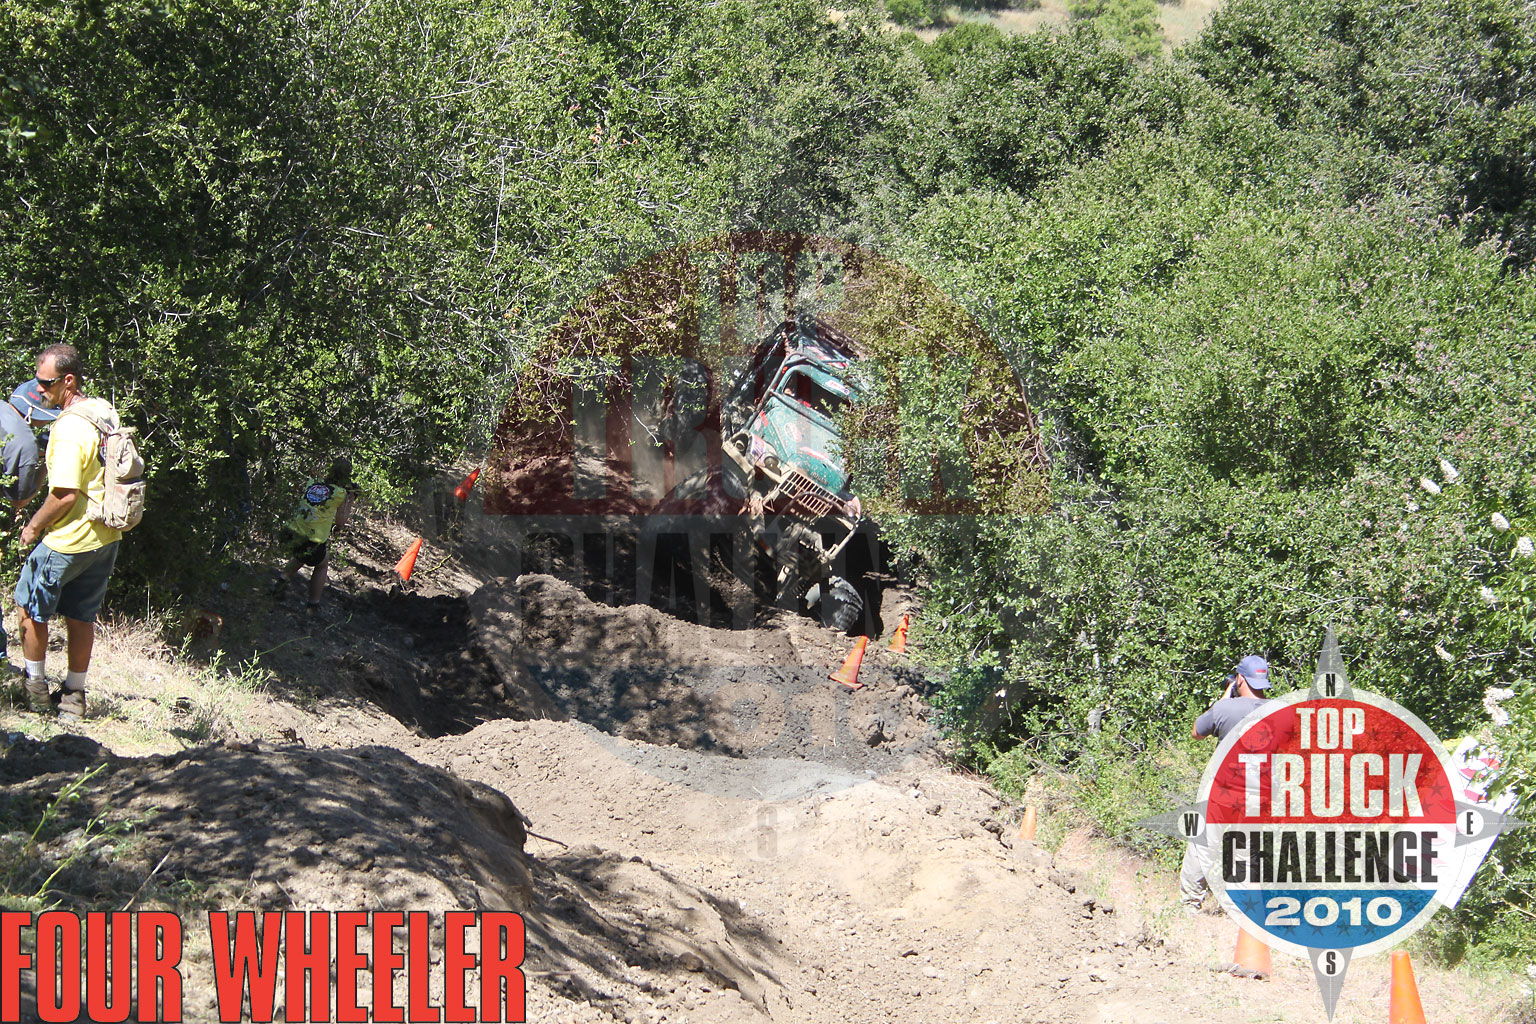 2010 Top Truck Challenge Hill Climb Roger King 1964 Dodge Wm300 Power Wagon